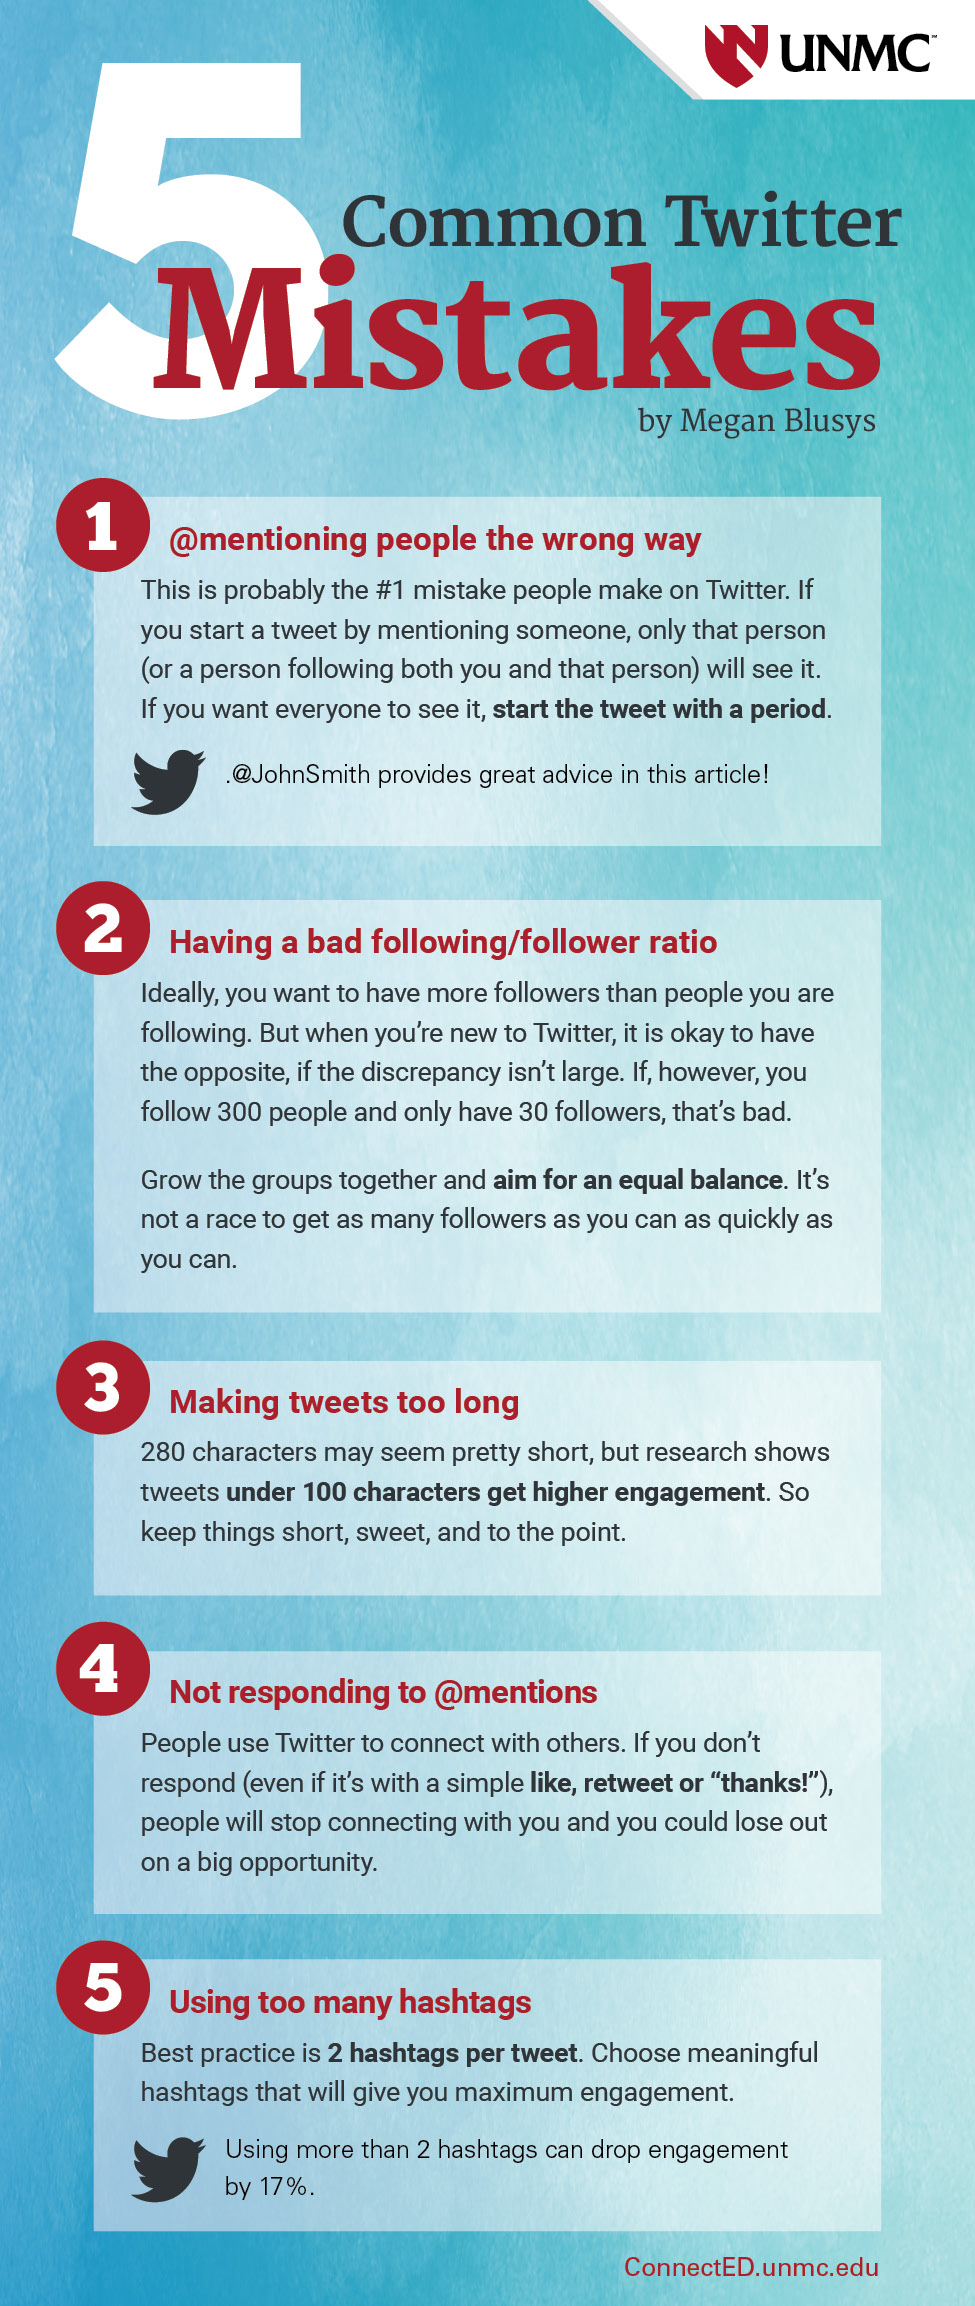 5 Common Twitter Mistakes by Megan Blusys